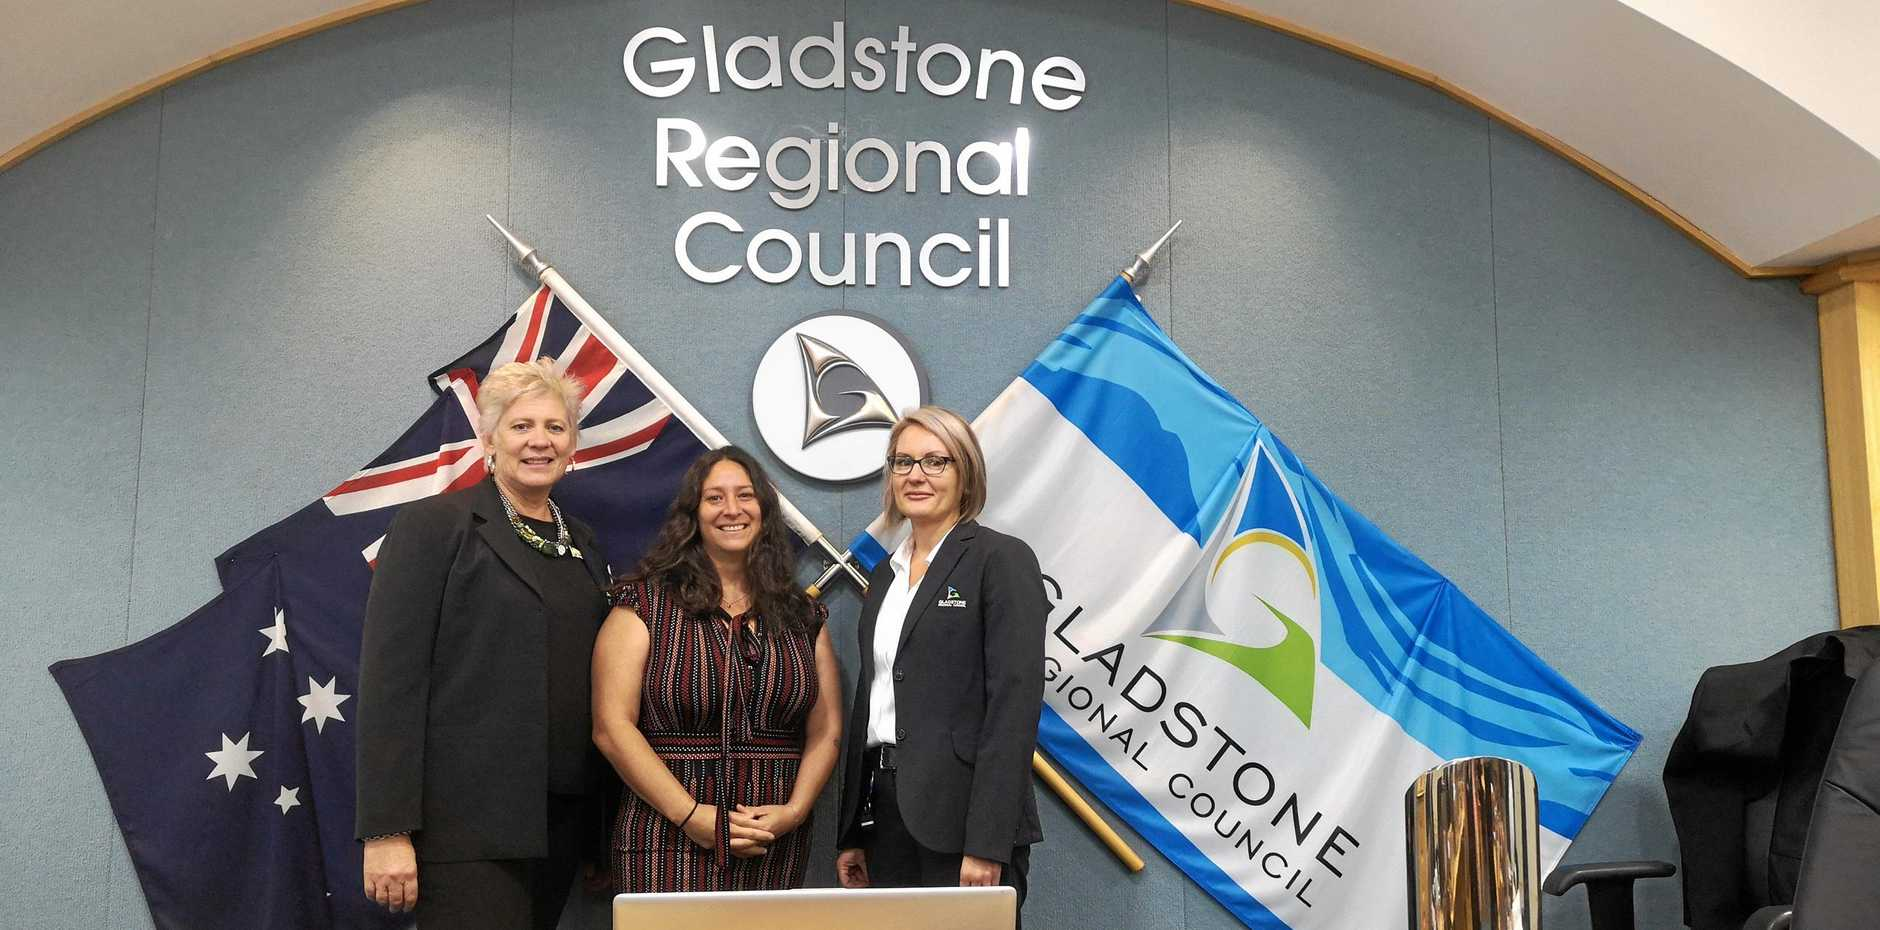 GIRL POWER: Gladstone region councillor Desley O'Grady, incoming councillor Natalia Muszkat and recently appointed Gladstone Regional Council CEO Leisa Dowling.